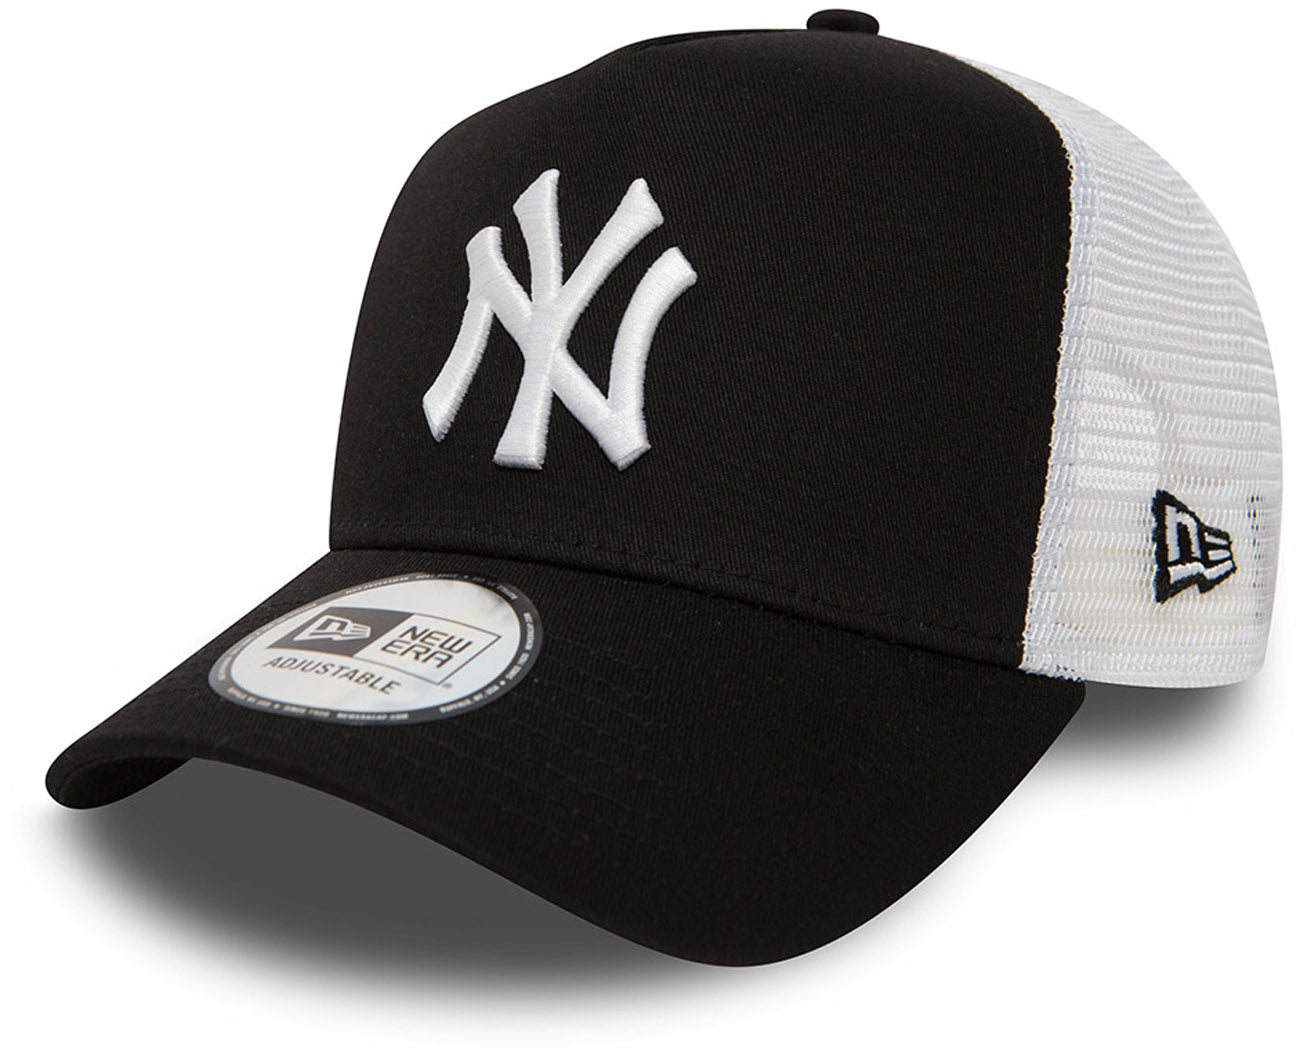 f1853b1fe46bad NY Yankees New Era Black Clean Trucker Cap – lovemycap